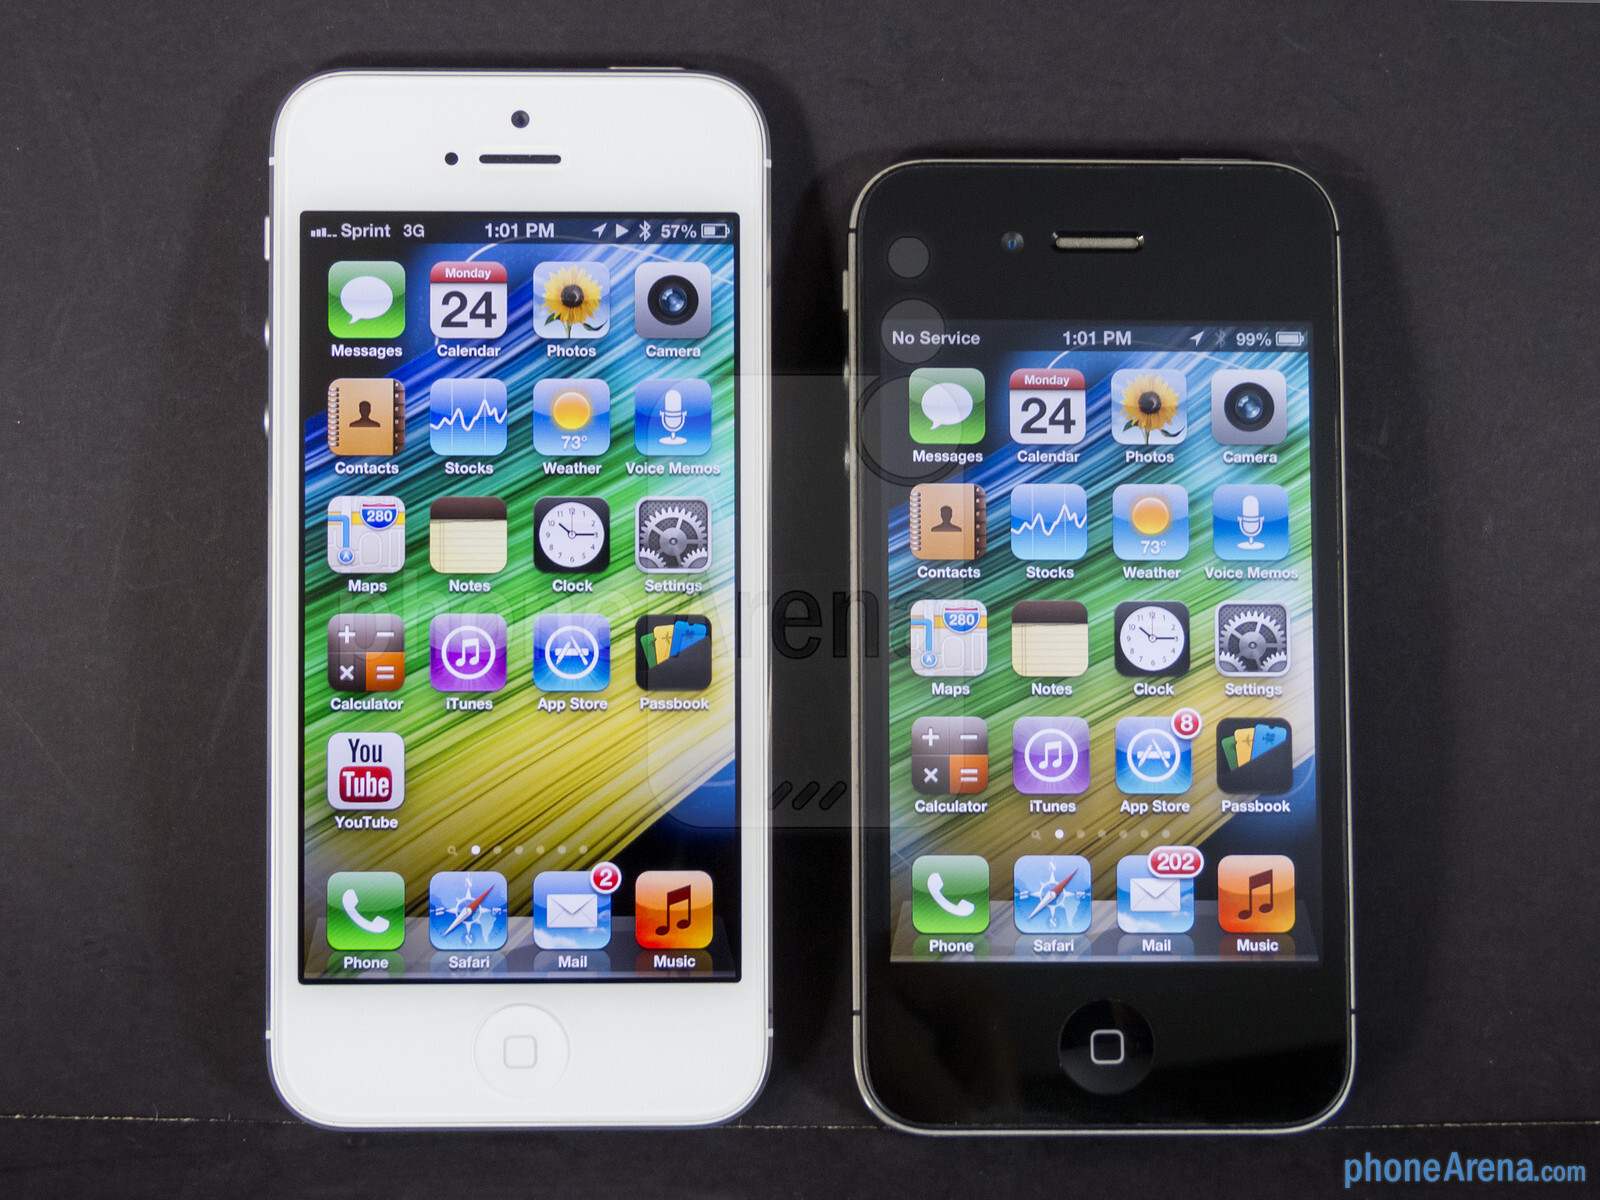 iphone 4 vs iphone 5 apple iphone 5 vs apple iphone 4s call quality battery 17344